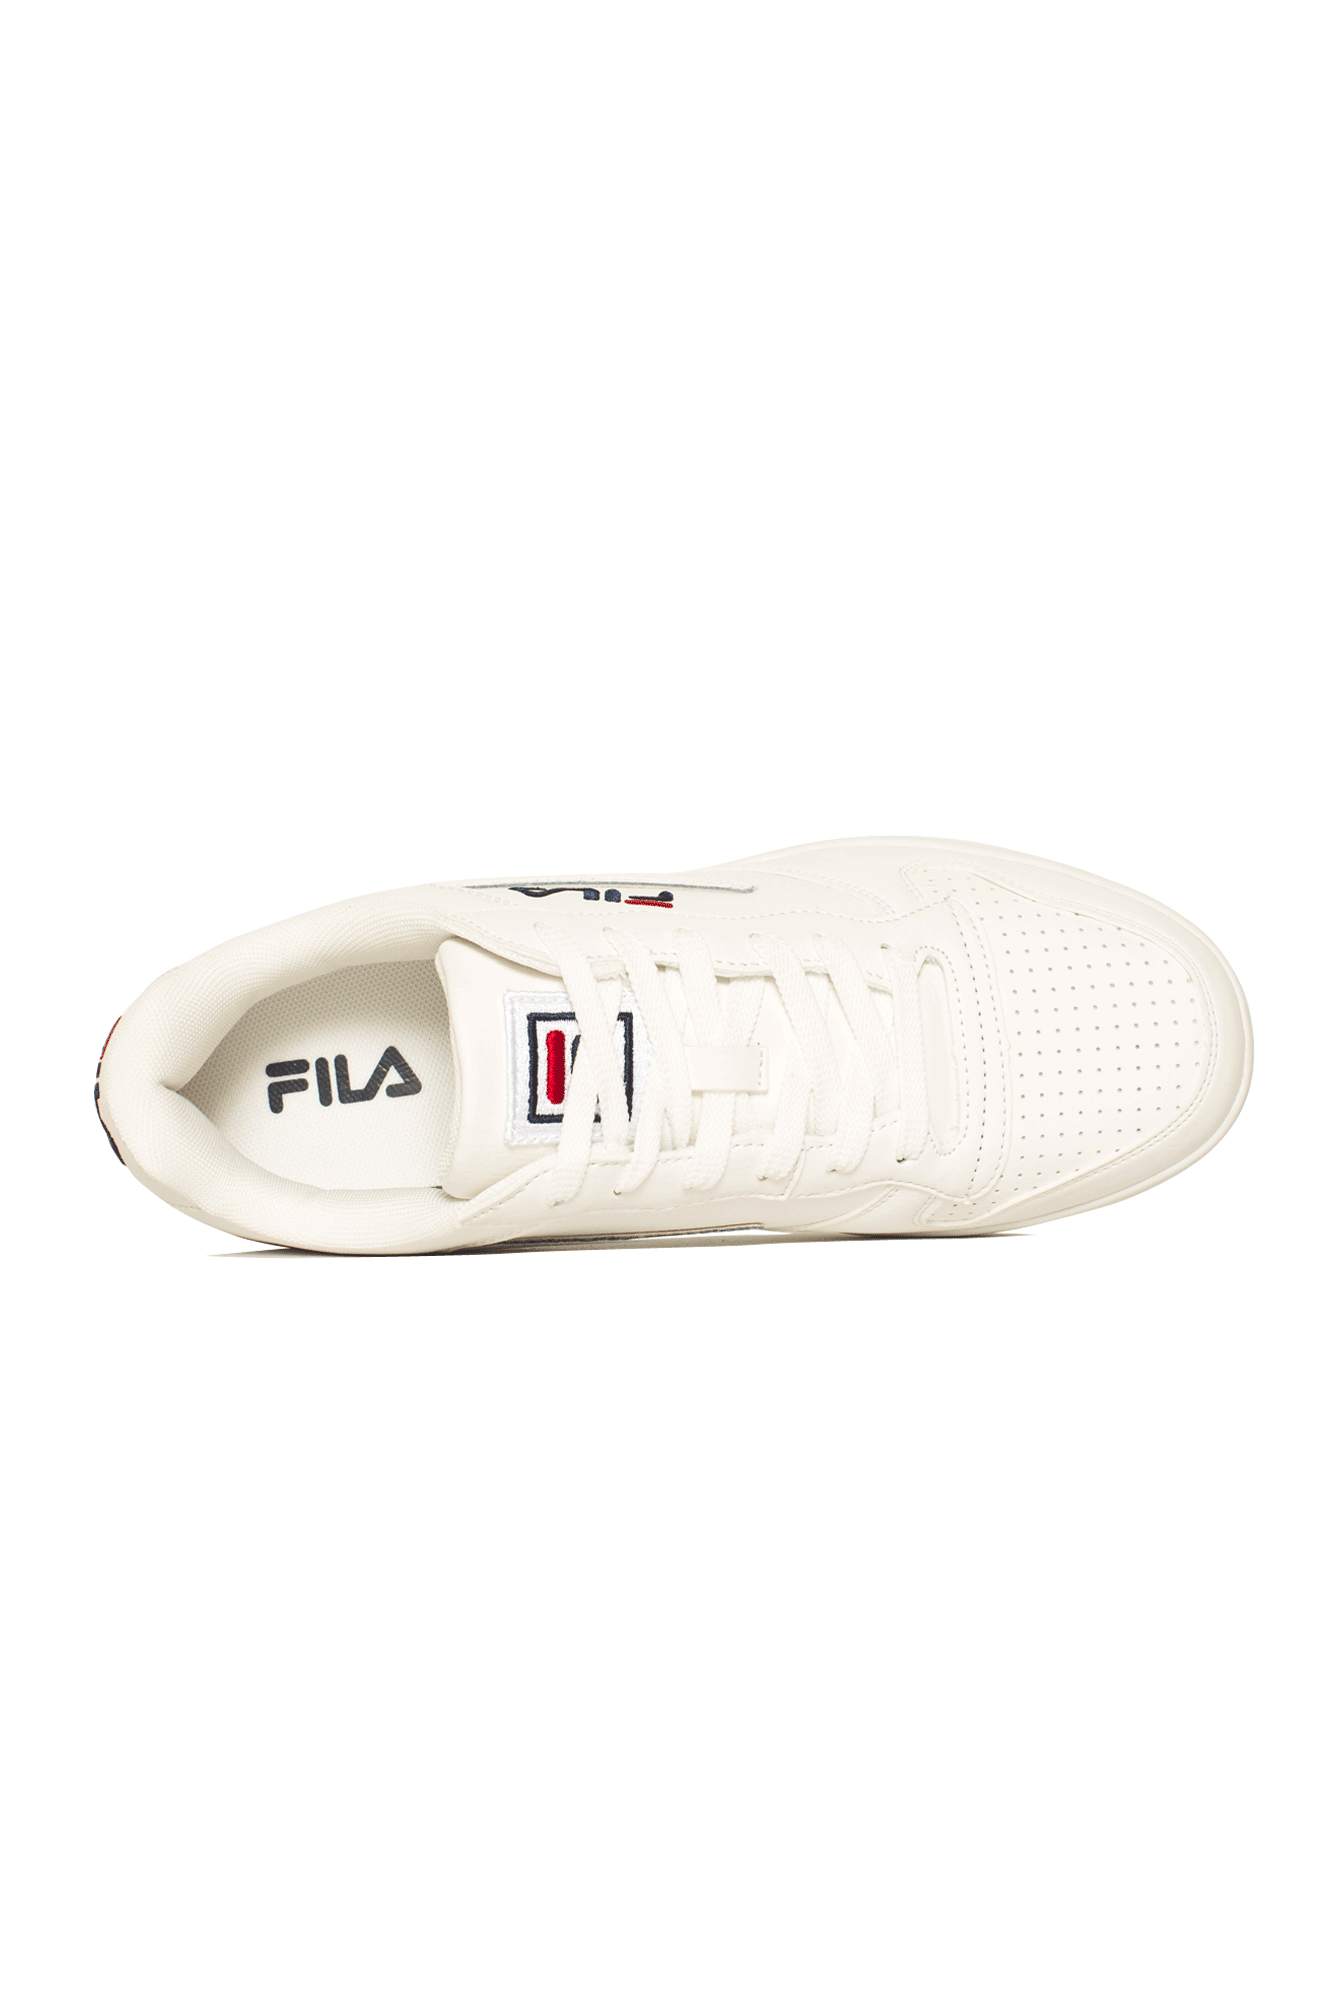 Fila Sneakers FX100 low Bianco 1010260#000#1FG#8 - One Block Down